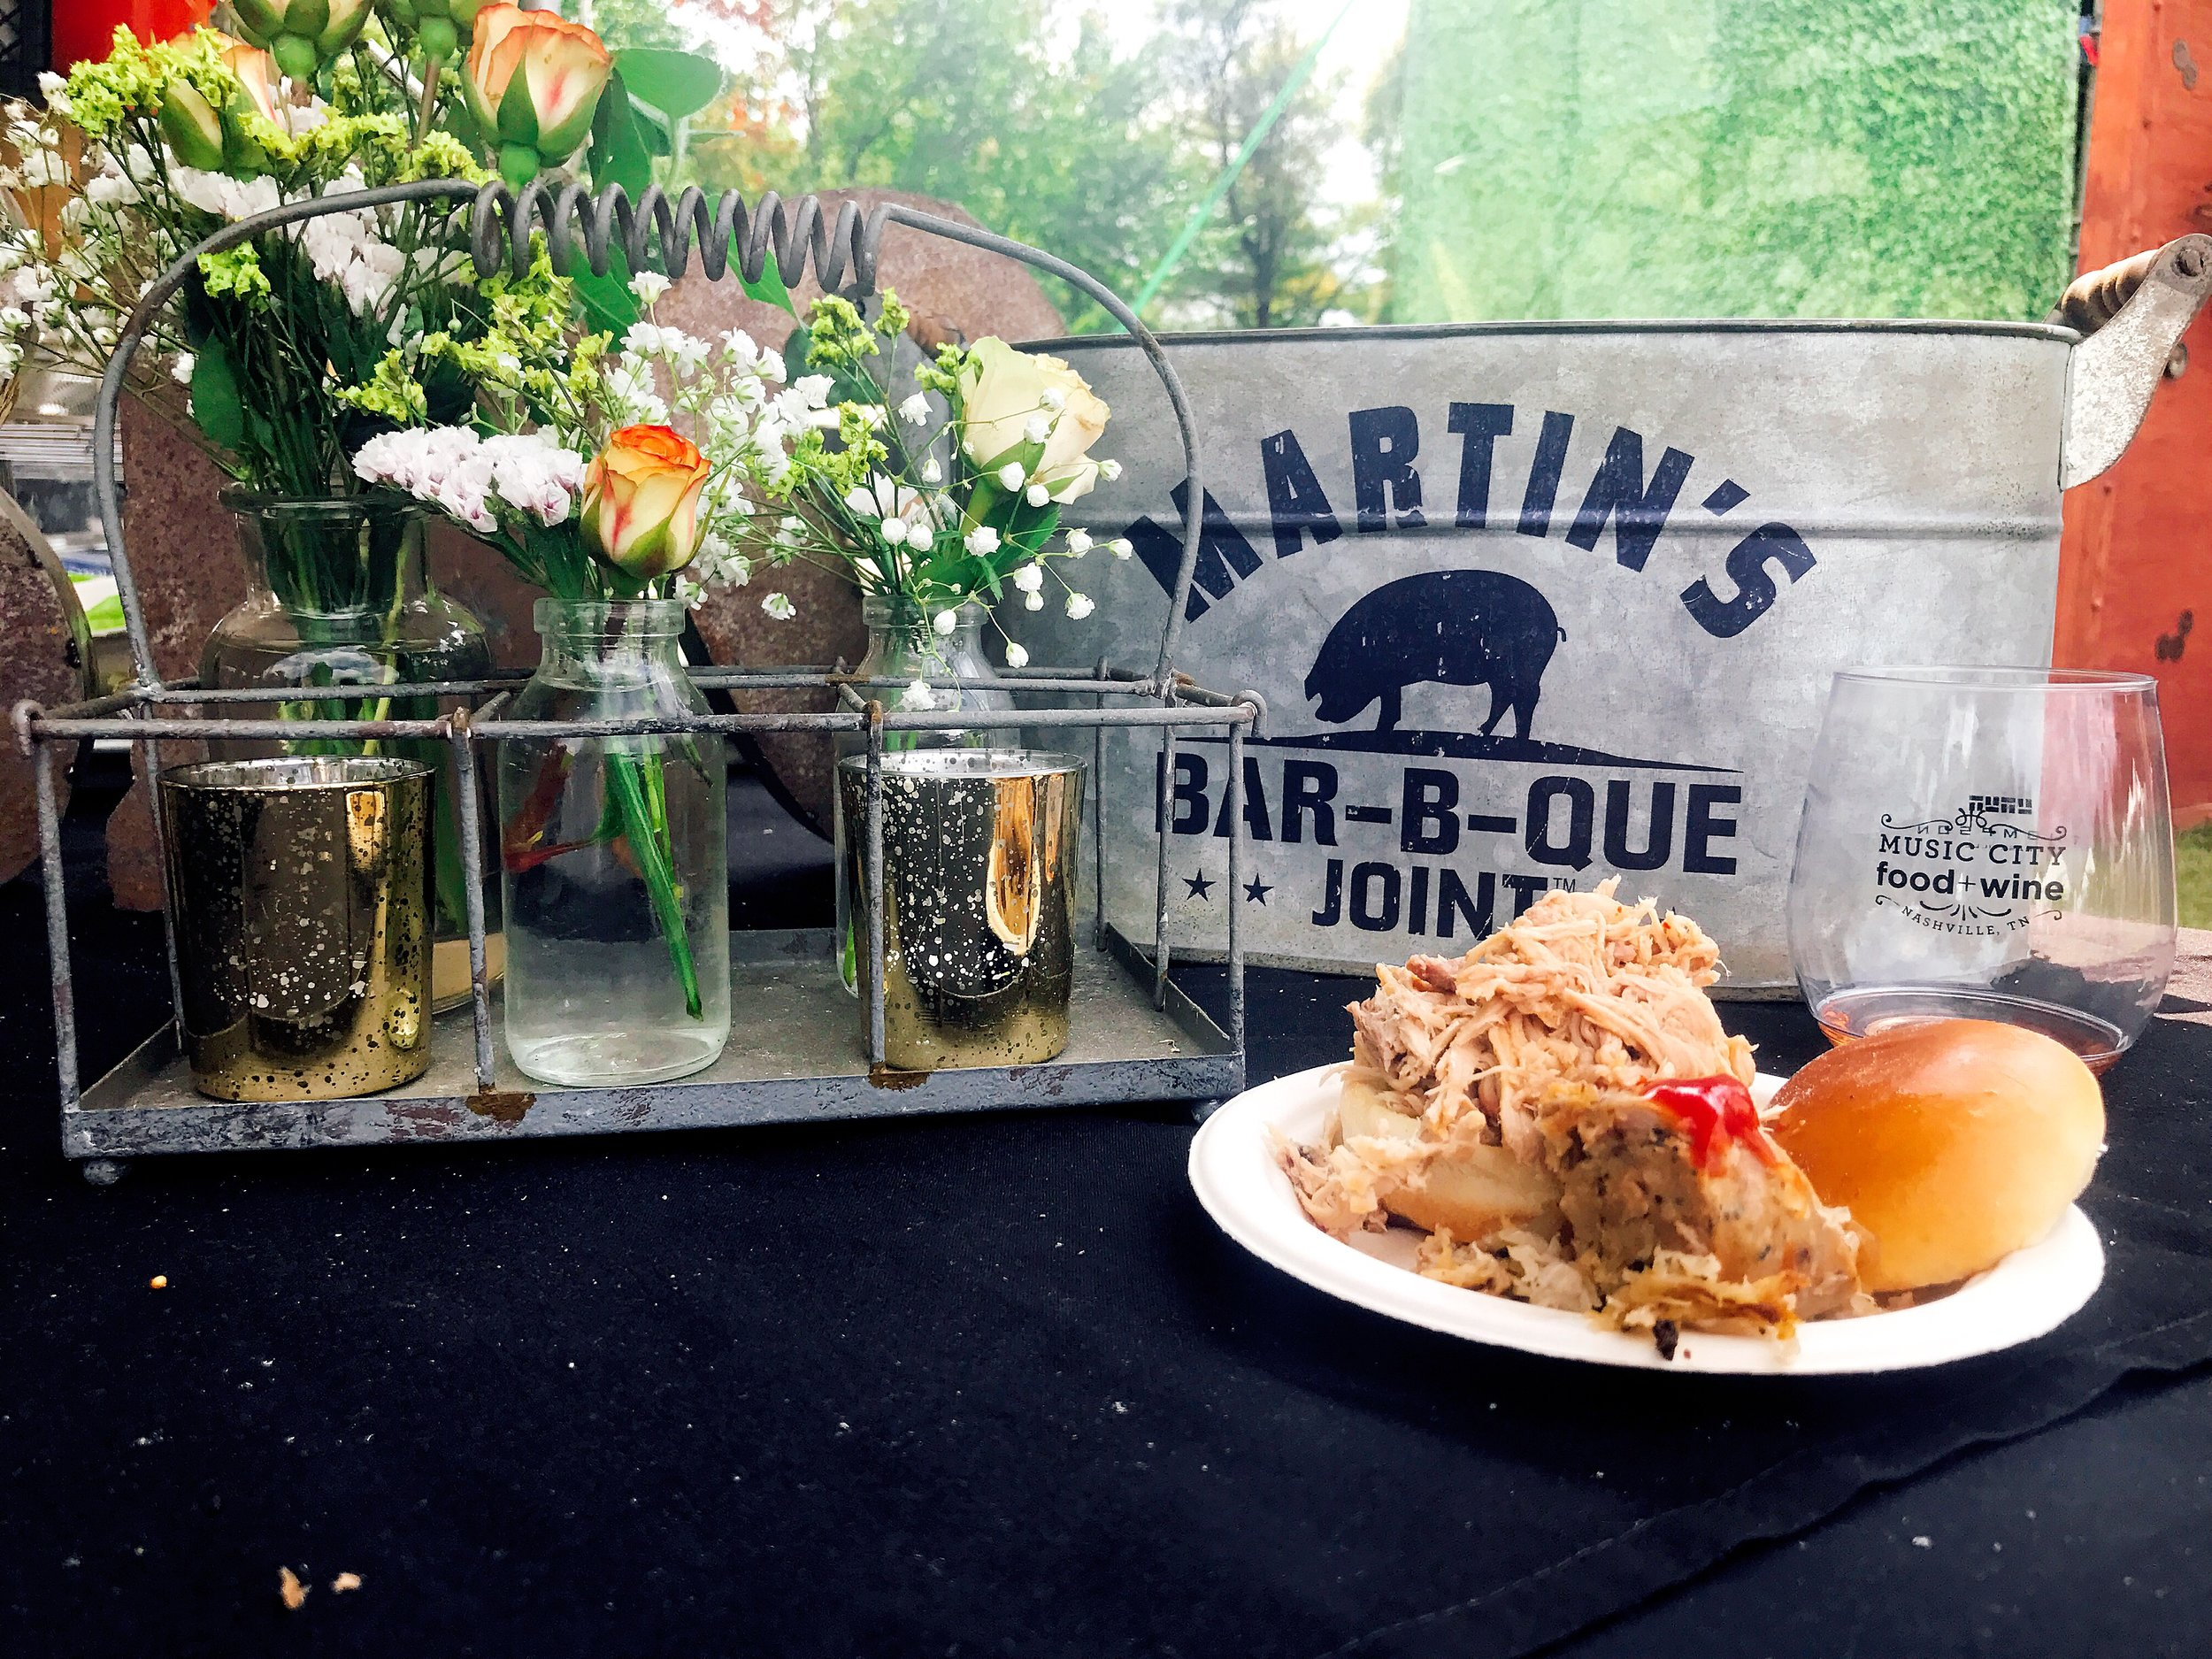 Martin's BBQ Joint and Friends: Pork Sliders and Sausage